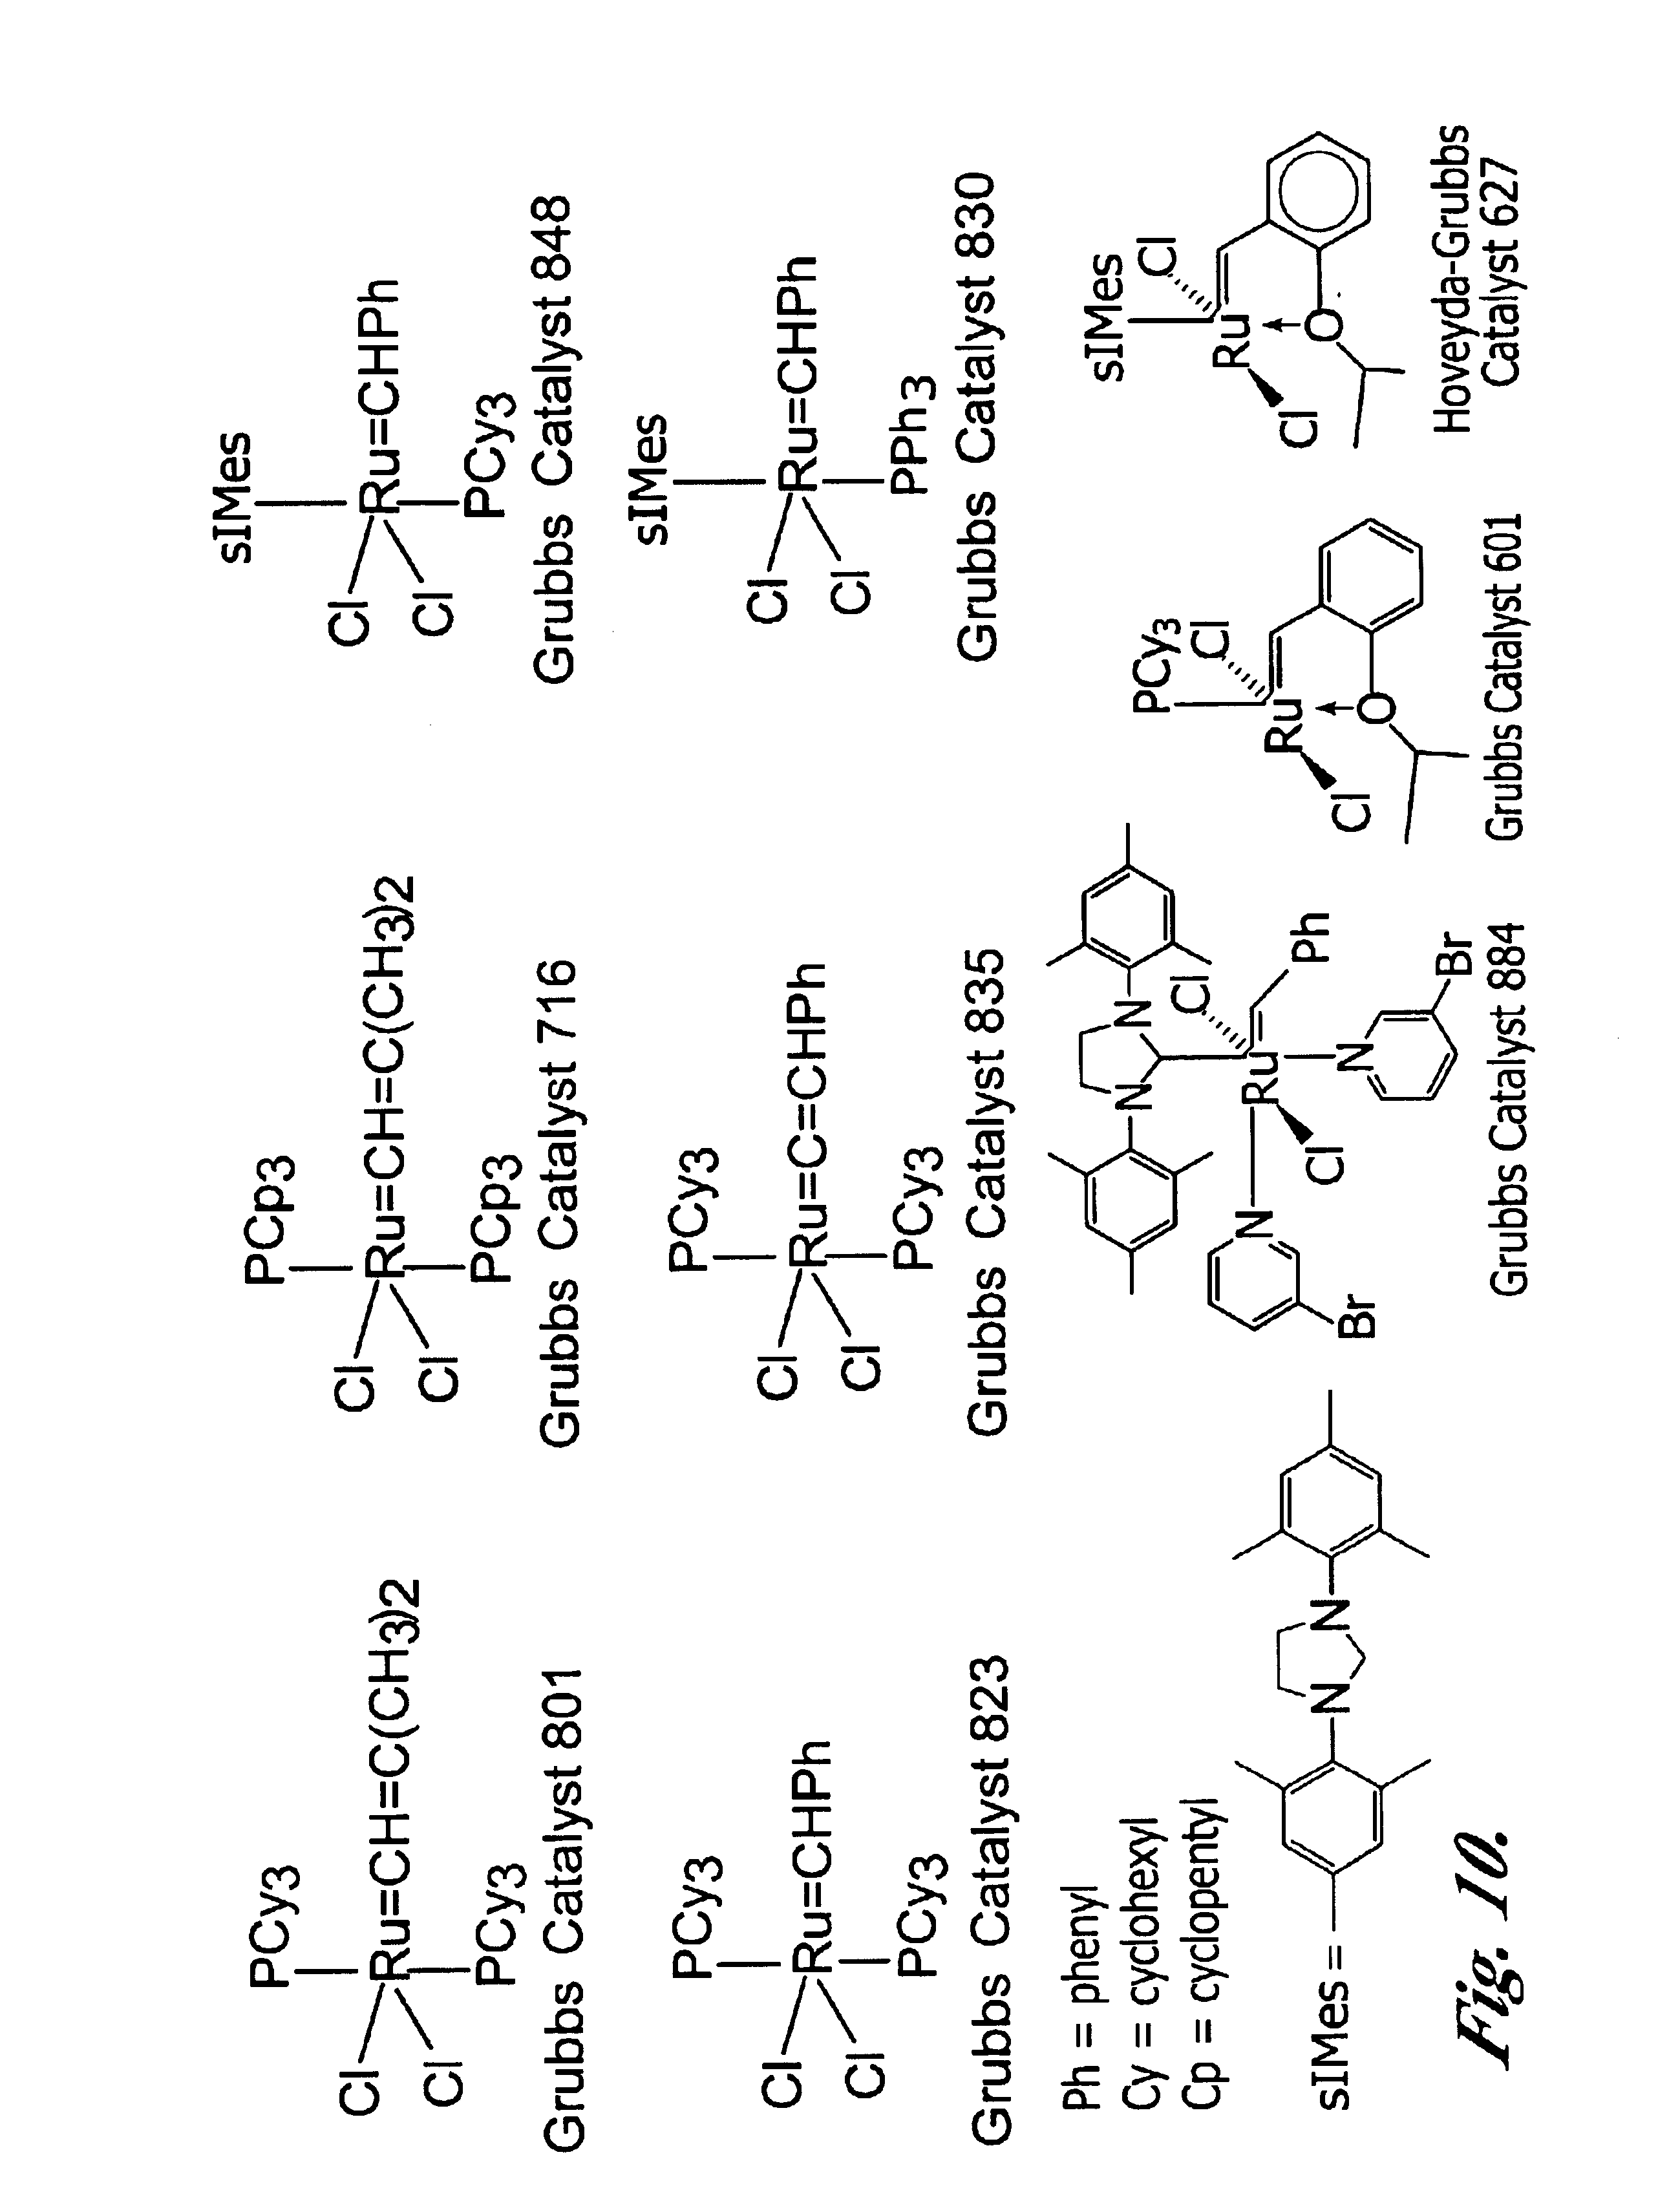 products of metathesis reactions The metathesis reaction between carbon–carbon double bonds (alkene metathesis) is well established in commercial scale synthesis it is a key component of some polymerization processes and is the route to nonfunctionalized alkenes which find applications in fine chemical synthesis.